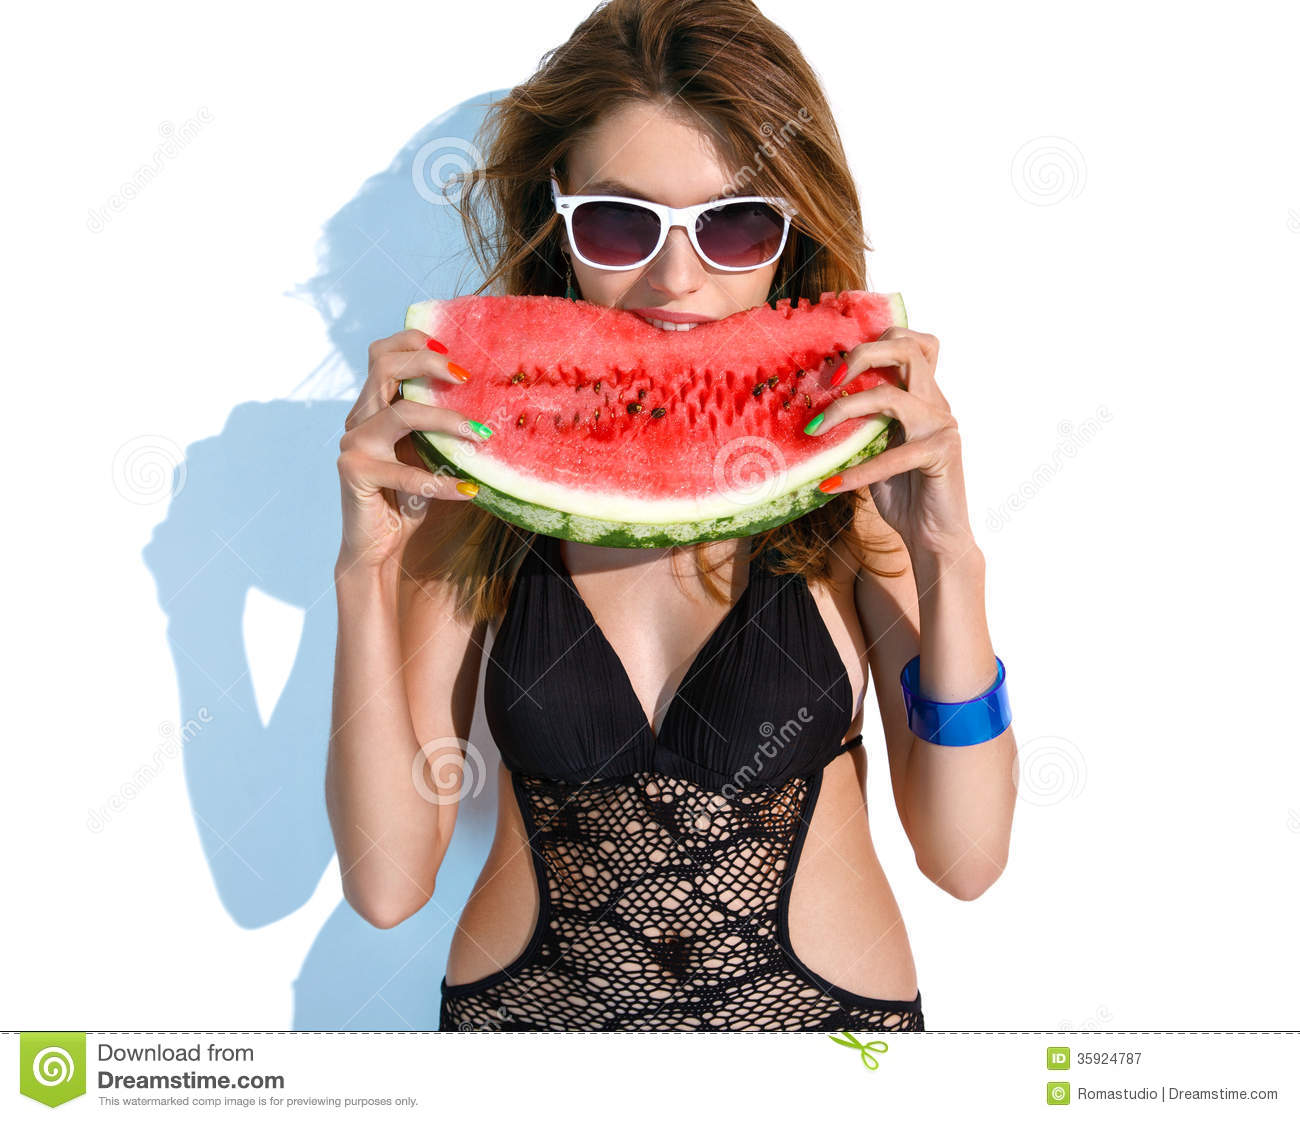 Tourist girl with a slice of watermelon